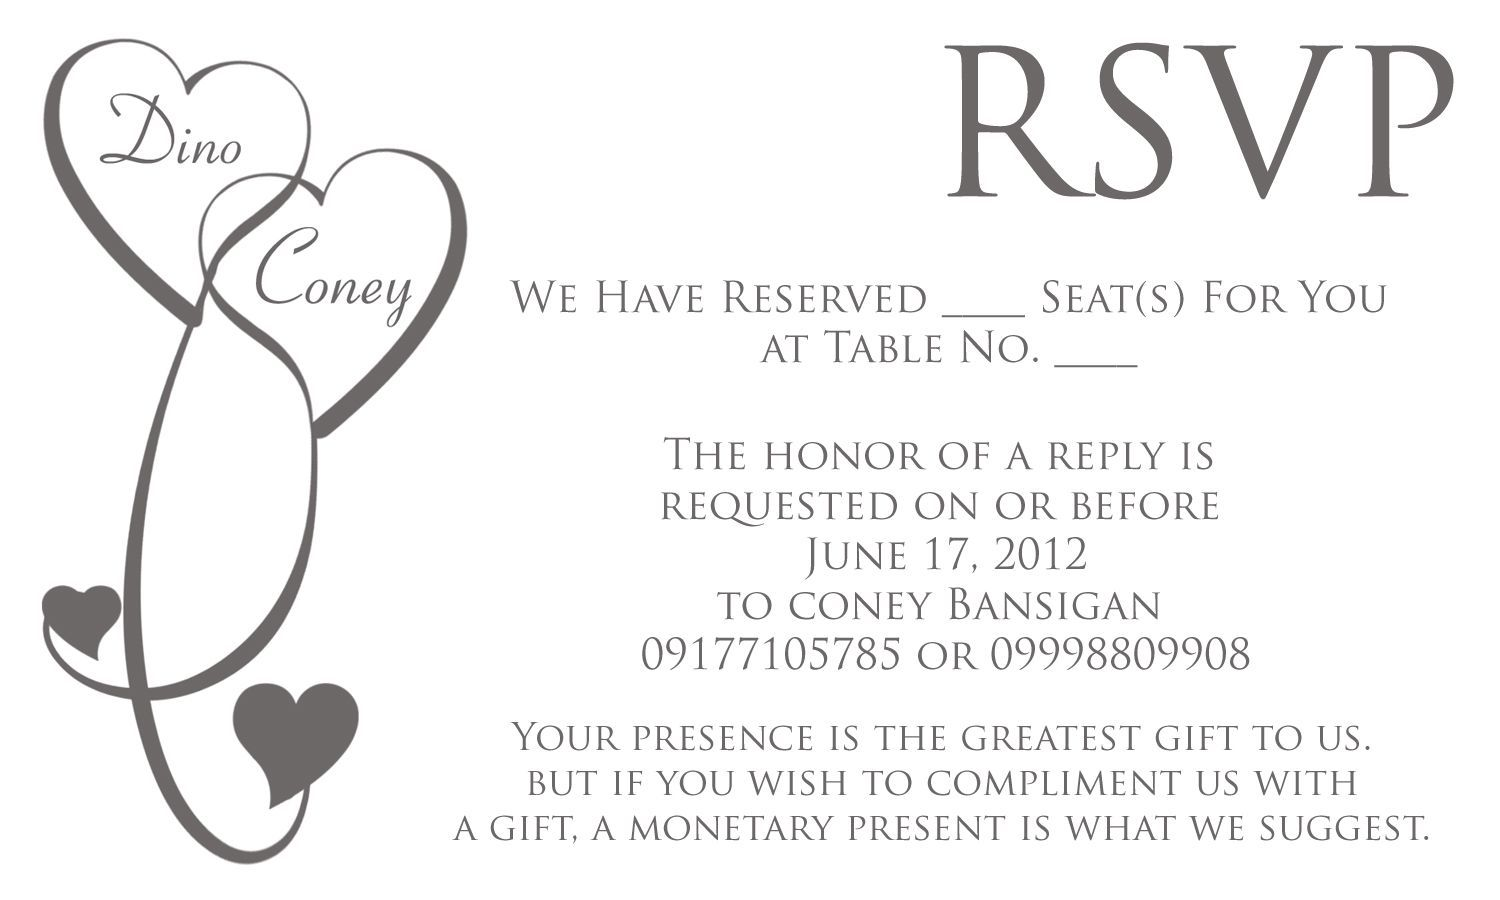 wedding invitation reply card wording samples | wedding invitations ...